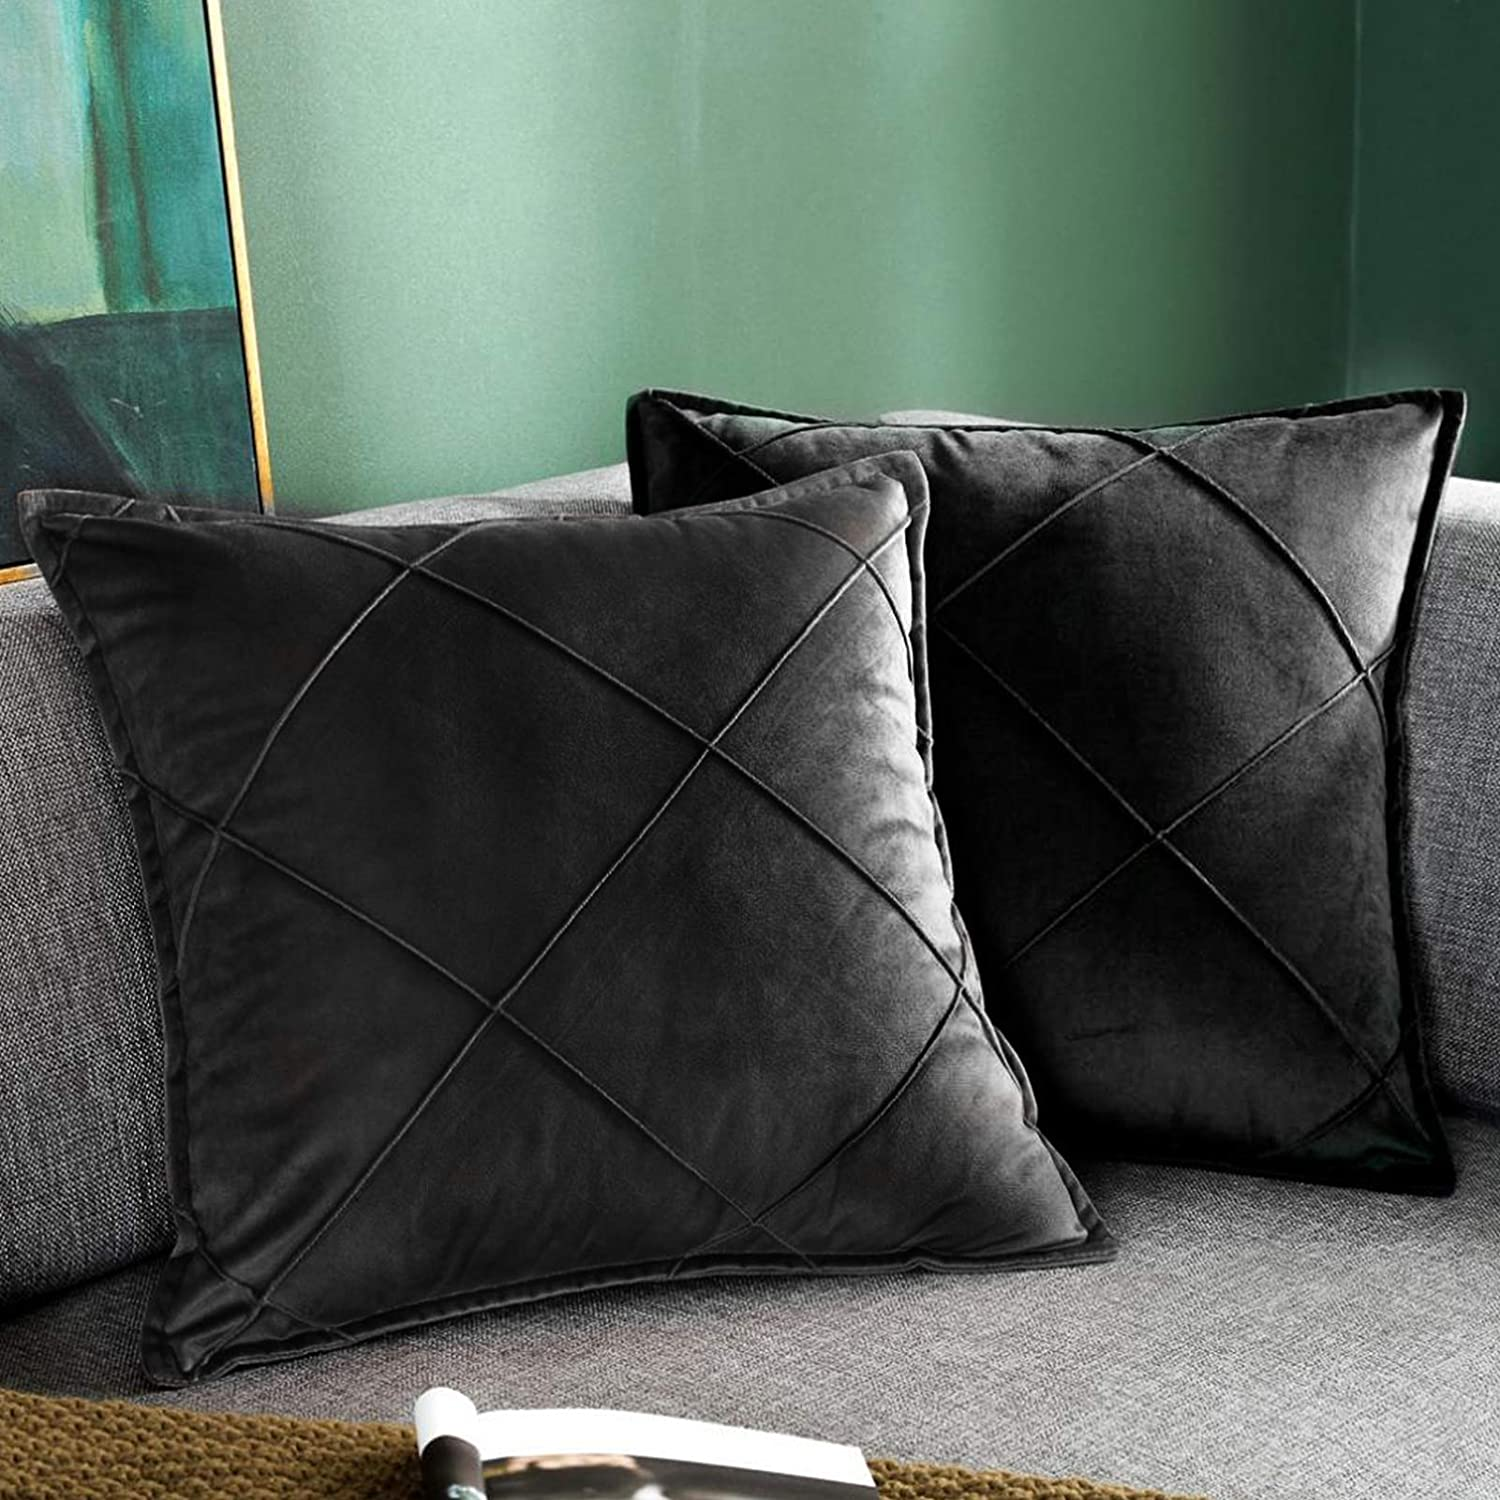 Lipo Set of 2 Throw Pillow Covers, Velvet Square Pillowcases, Decorative Soft & Cozy Throw Pillow Cushion Covers Pillowcase, Home Decor for Sofa Couch Bed Chair, 20x20 Inch, Black